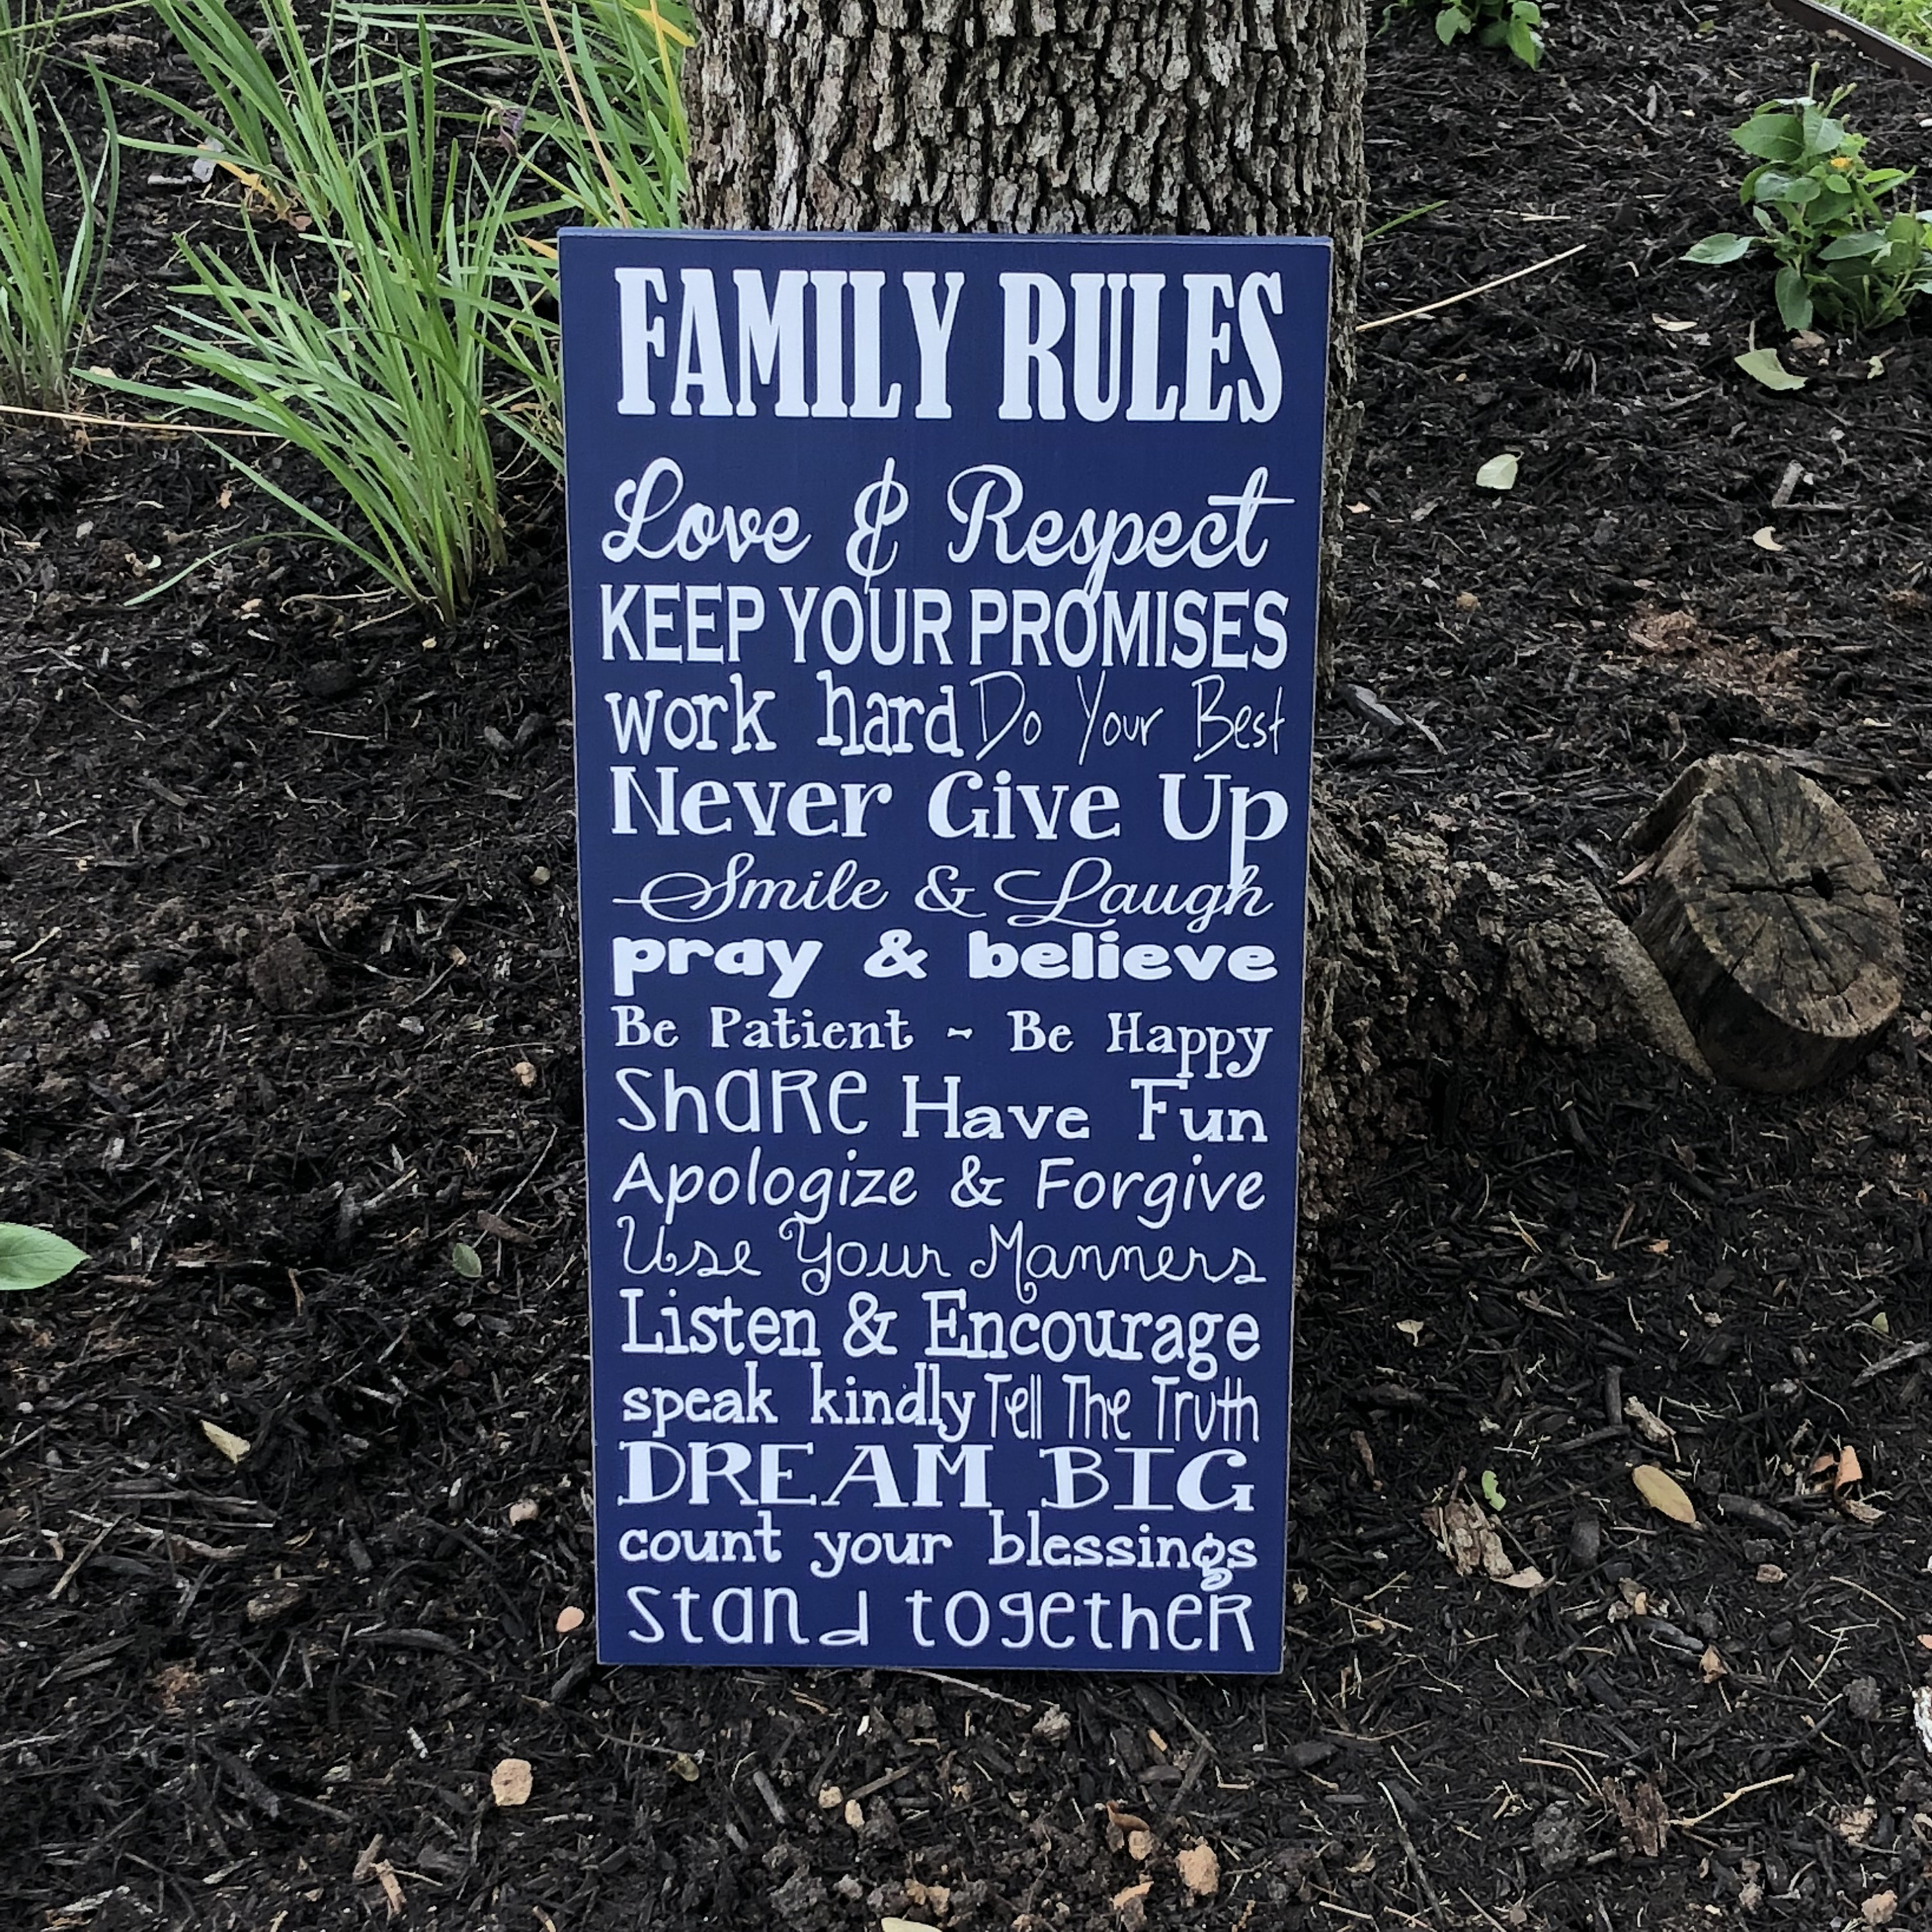 Family Rules Custom Wood Sign Family Values House Rules